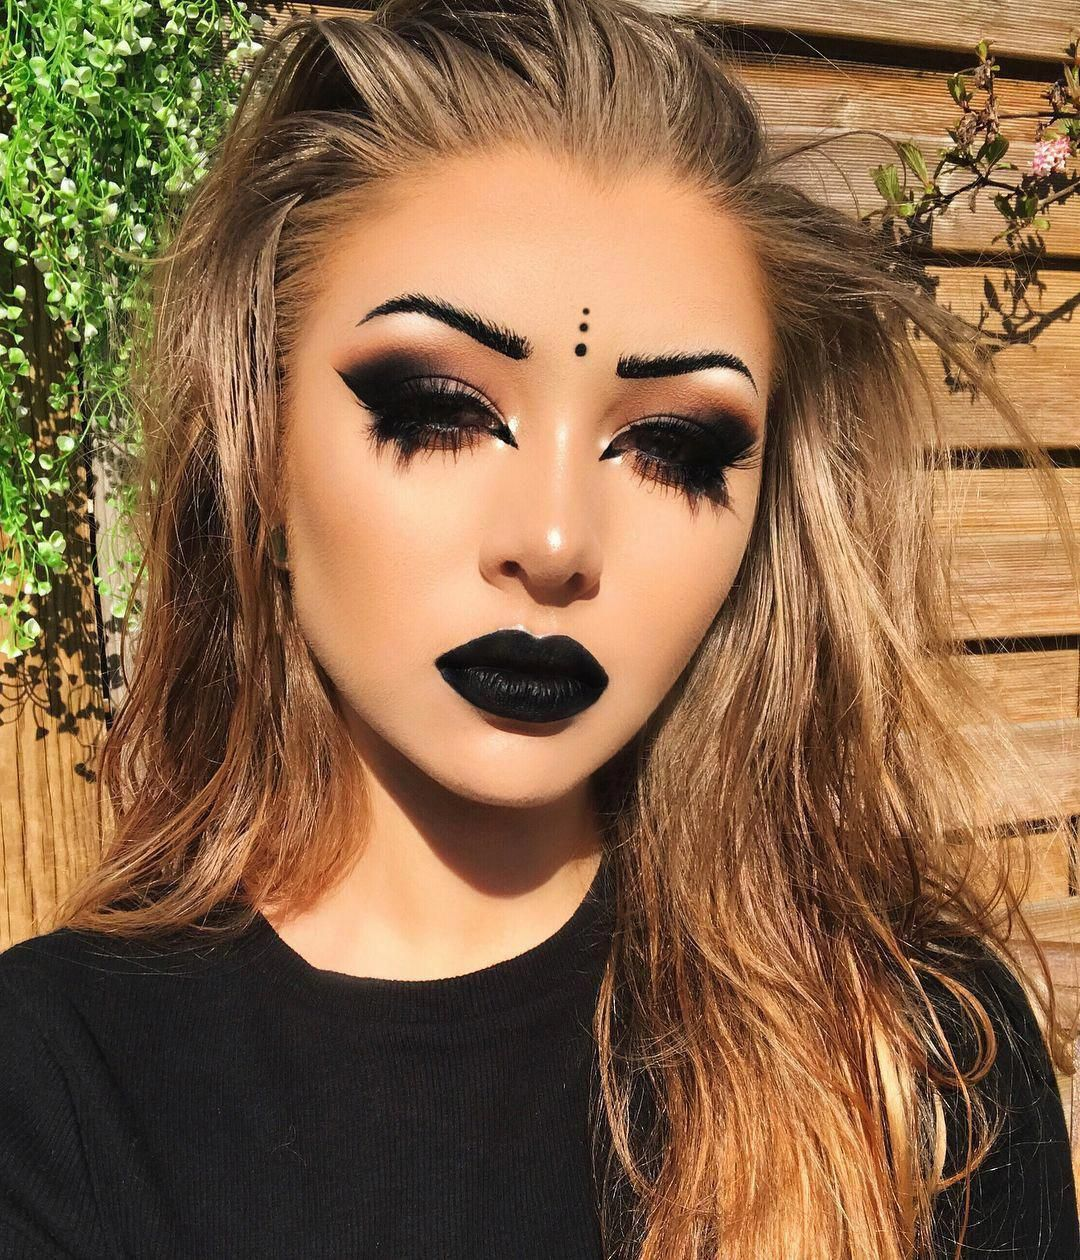 36 Black Lipstick Looks   How to wear black lipstick. -- @sarahanne616 Instagram   She is serving face with this bold black eyeshadow makeup and bold black lipstick. This is definitely a goth makeup look. --- #black #lipstick #blacklipstick #goth #makeup #gothmakeup #gothgirl -- #Estilo